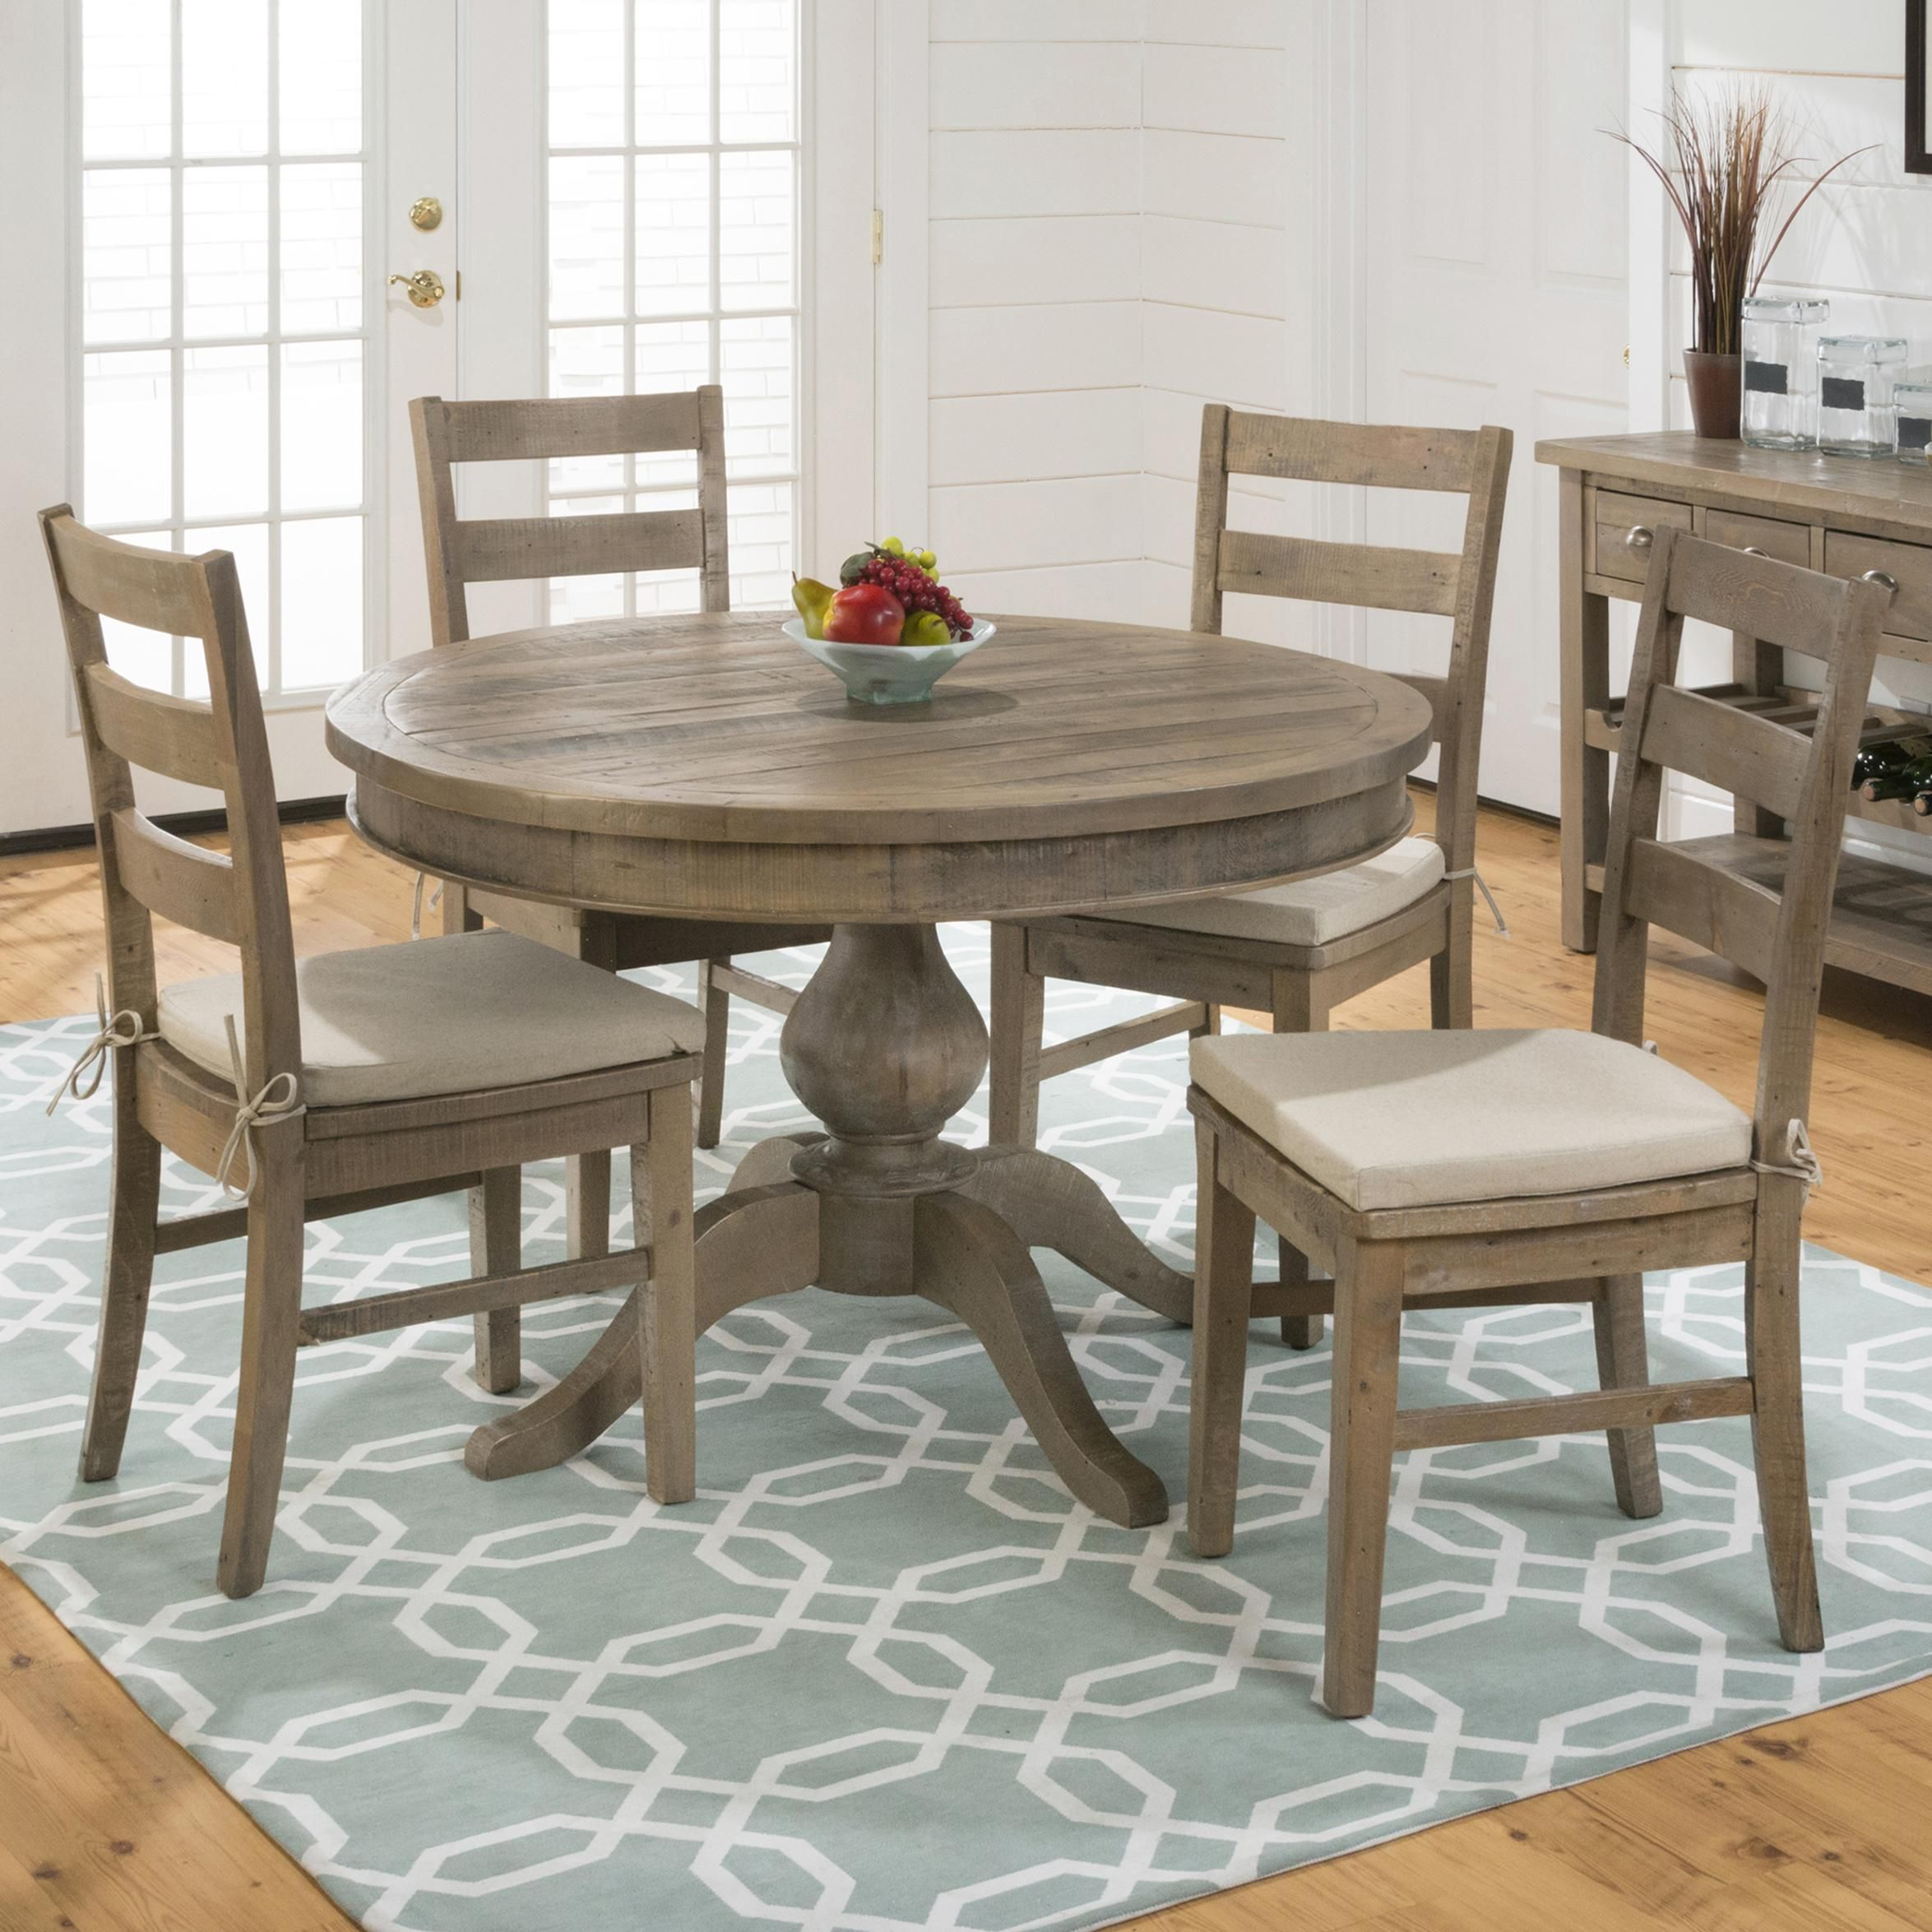 Slater Mill Pine Reclaimed Pine Round To Oval Dining Table By Jofran